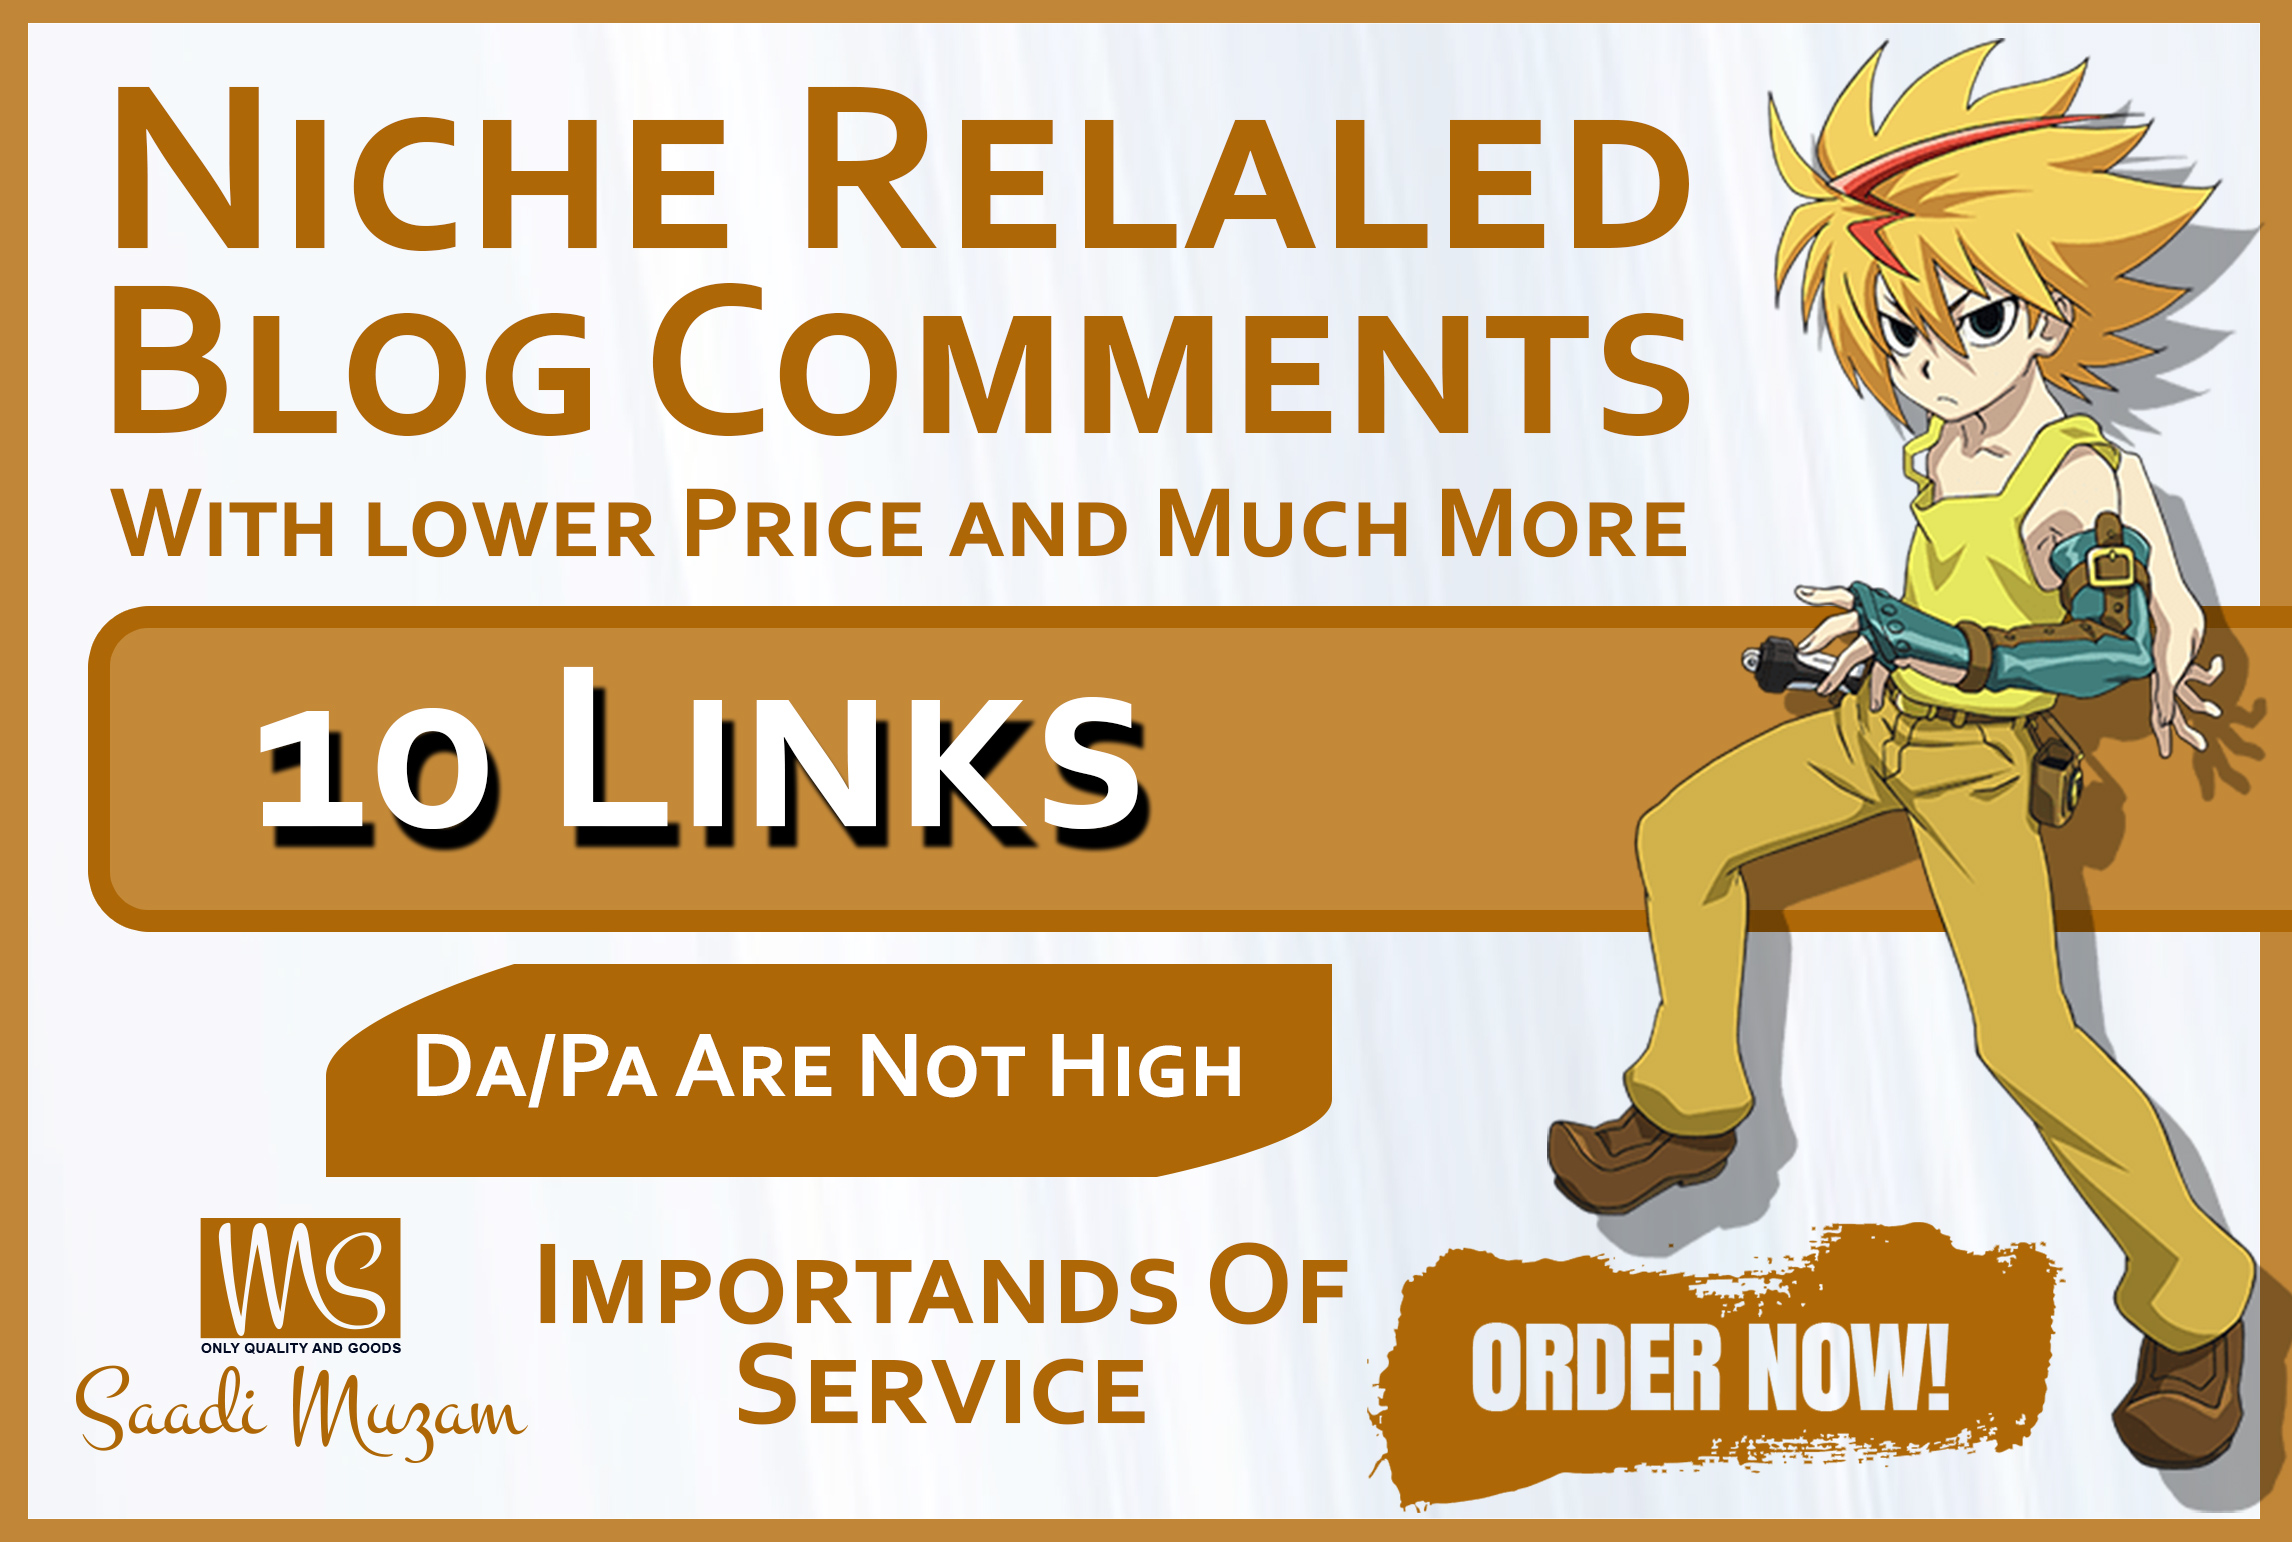 I do Niche Relaled Blog Comments With lower Price and Much More 10 links